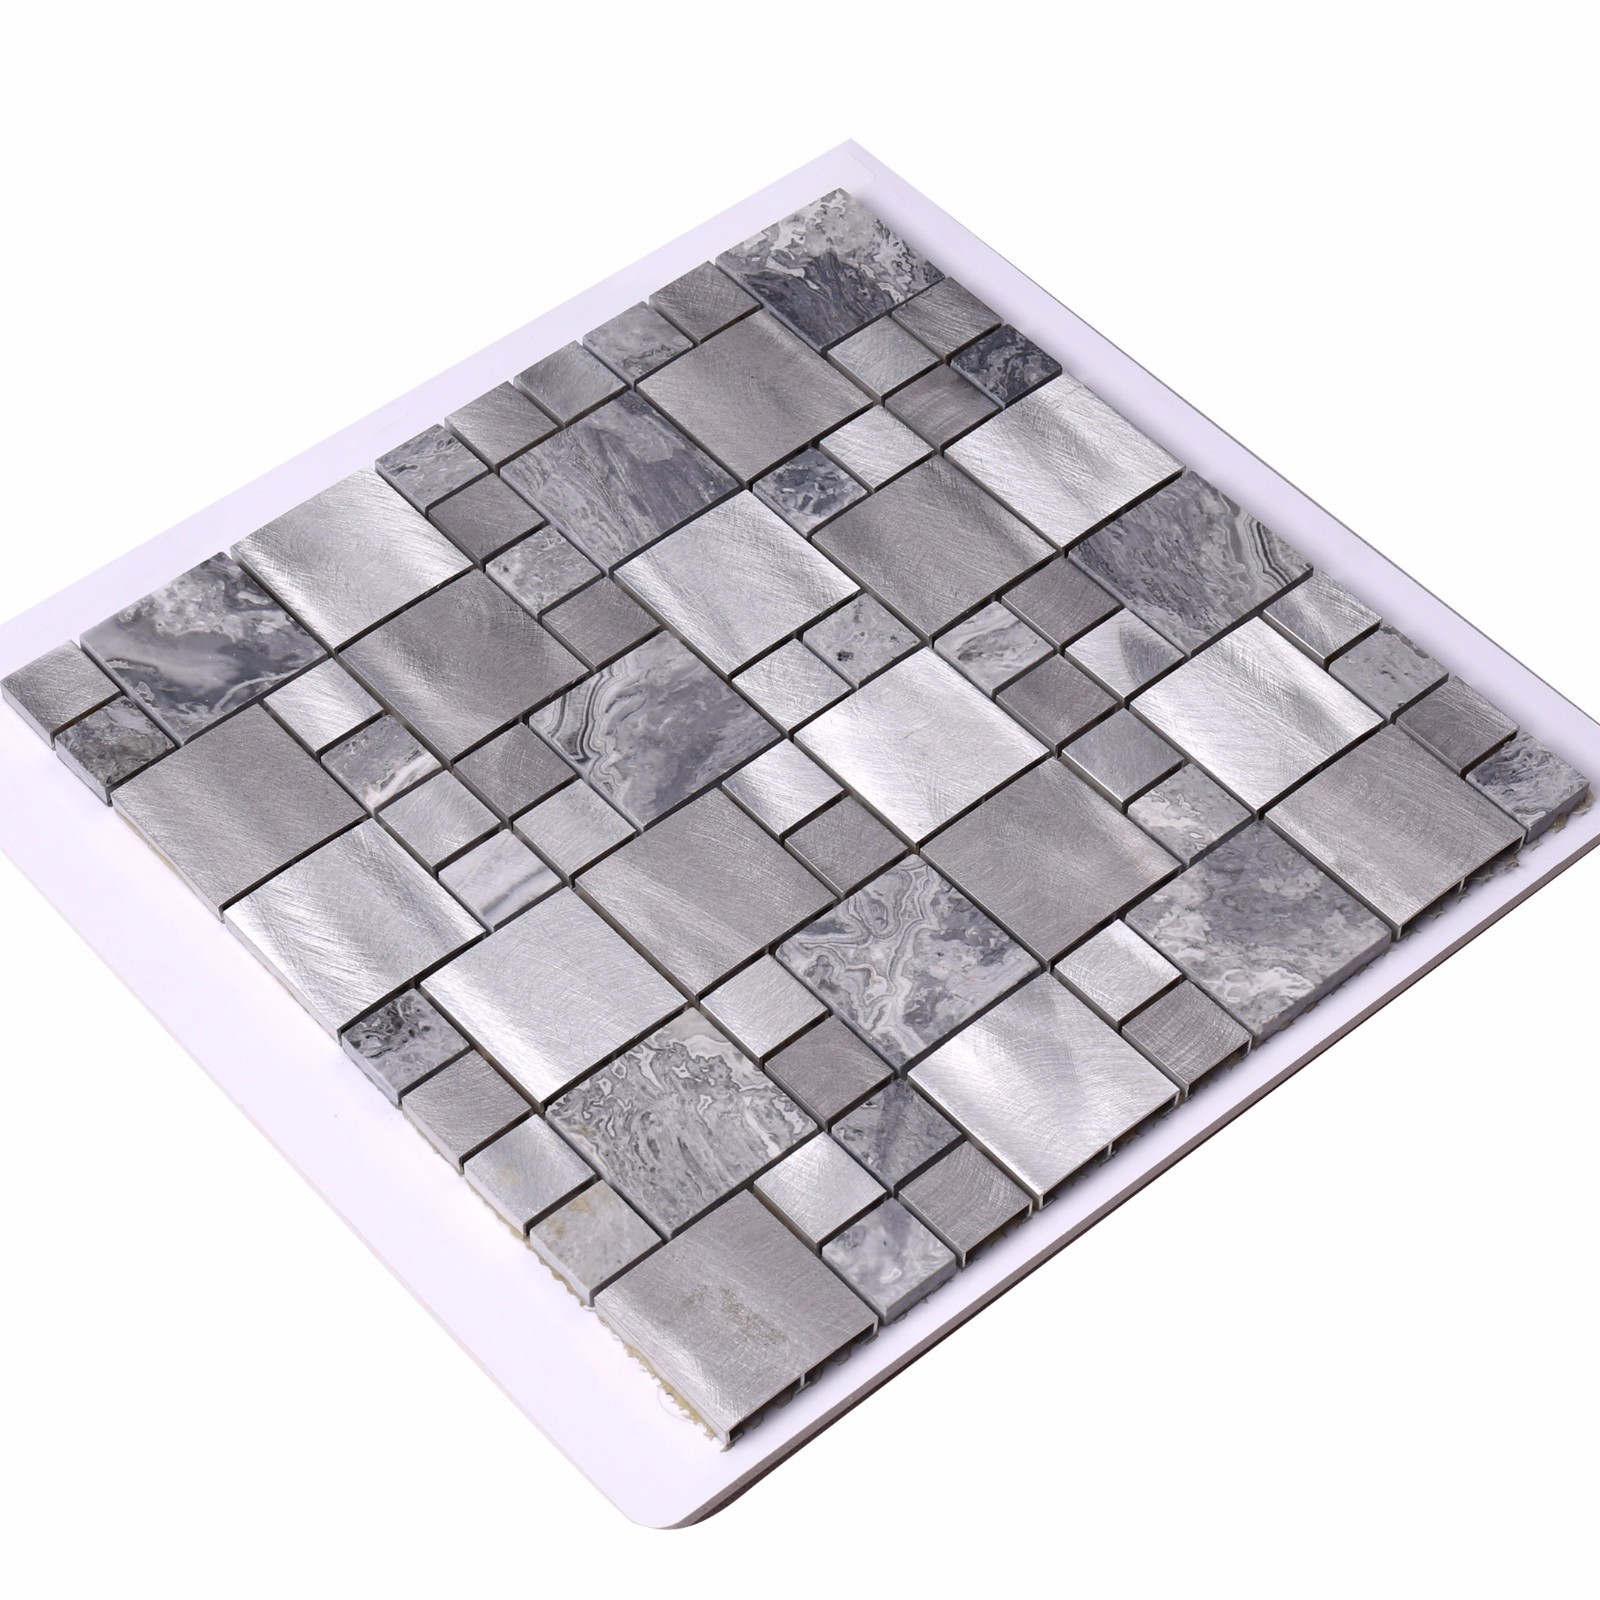 Heng Xing-Oem Odm Metal Tile Backsplash, Metal Ceiling Tiles | Heng Xing-4